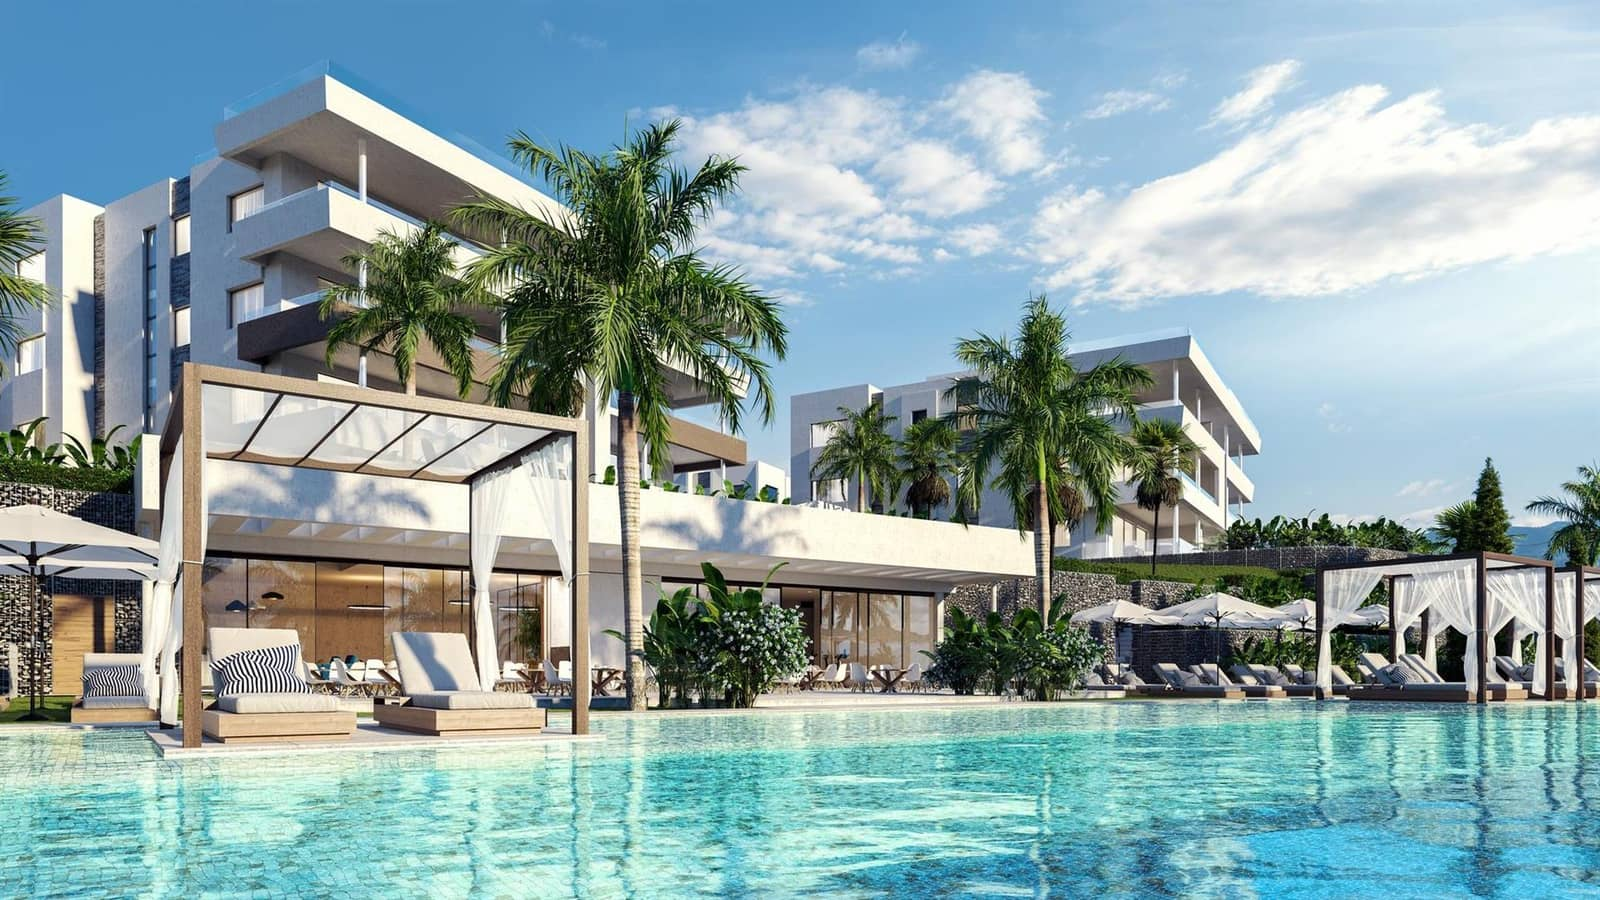 3 bedroom Apartment for sale in Marbella - € 790,000 (Ref: 5038715)